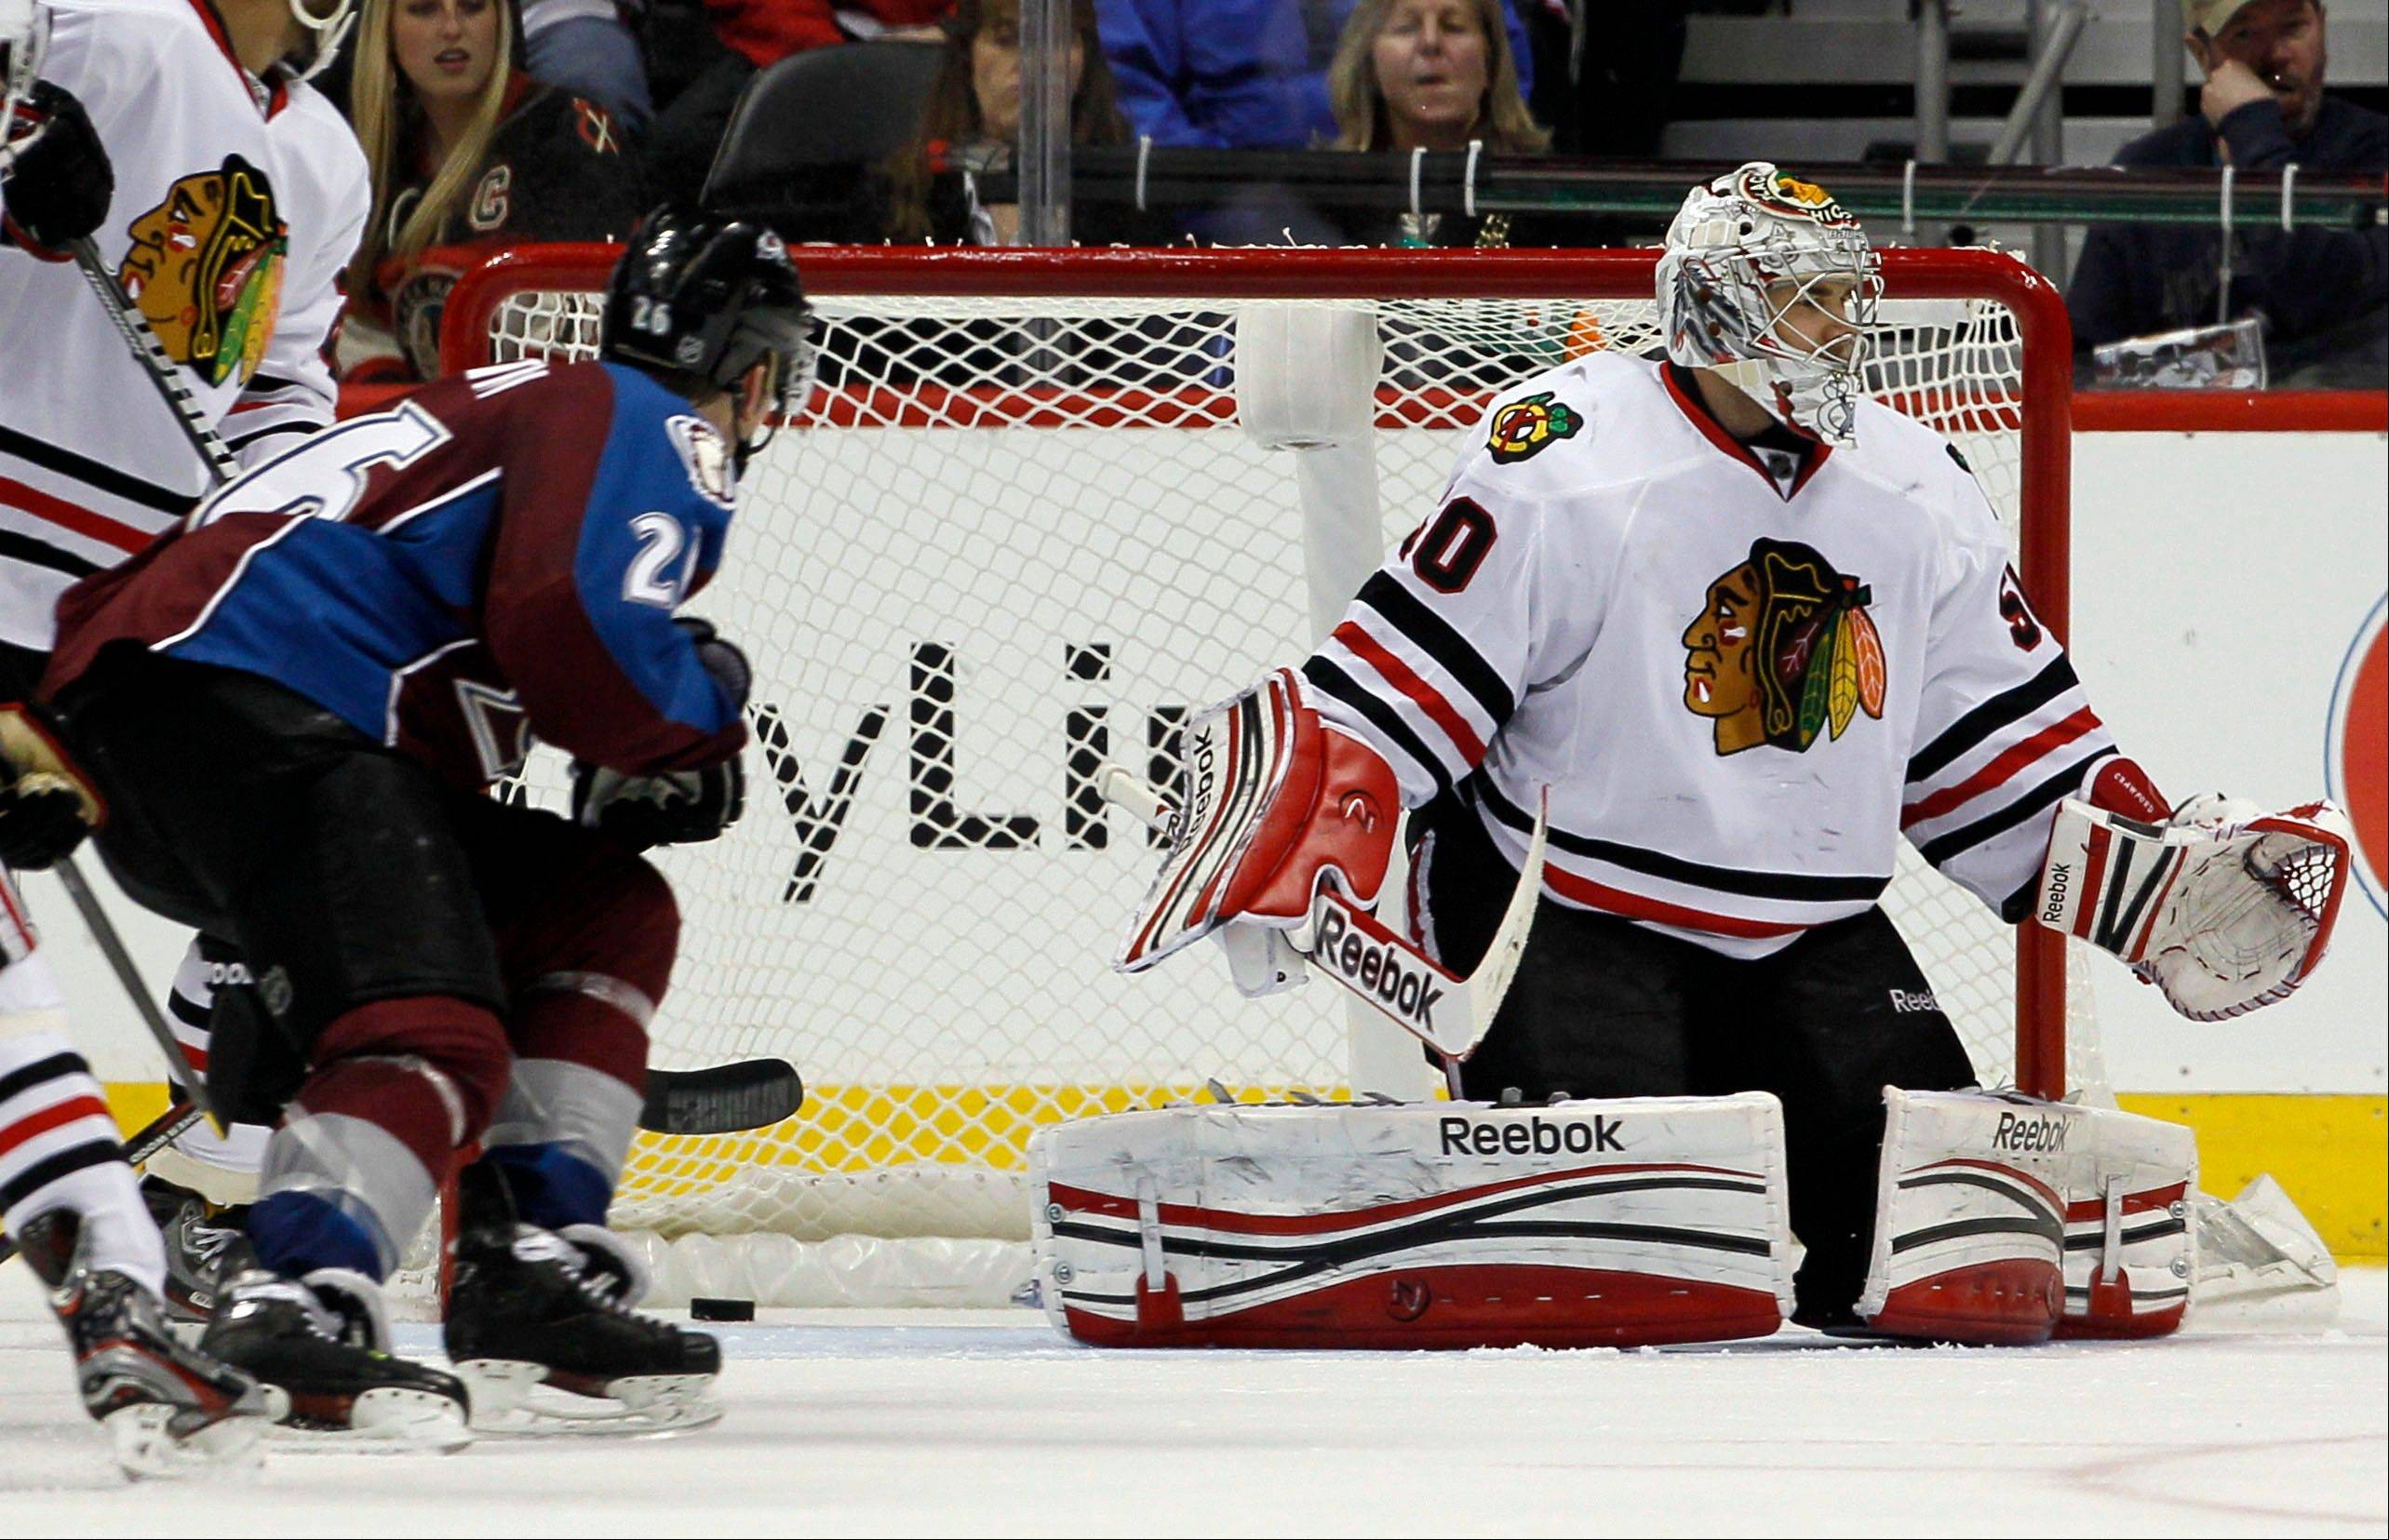 Chicago Blackhawks goalie Corey Crawford, right, reacts after letting in a goal by Colorado Avalanche center Ryan O'Reilly .